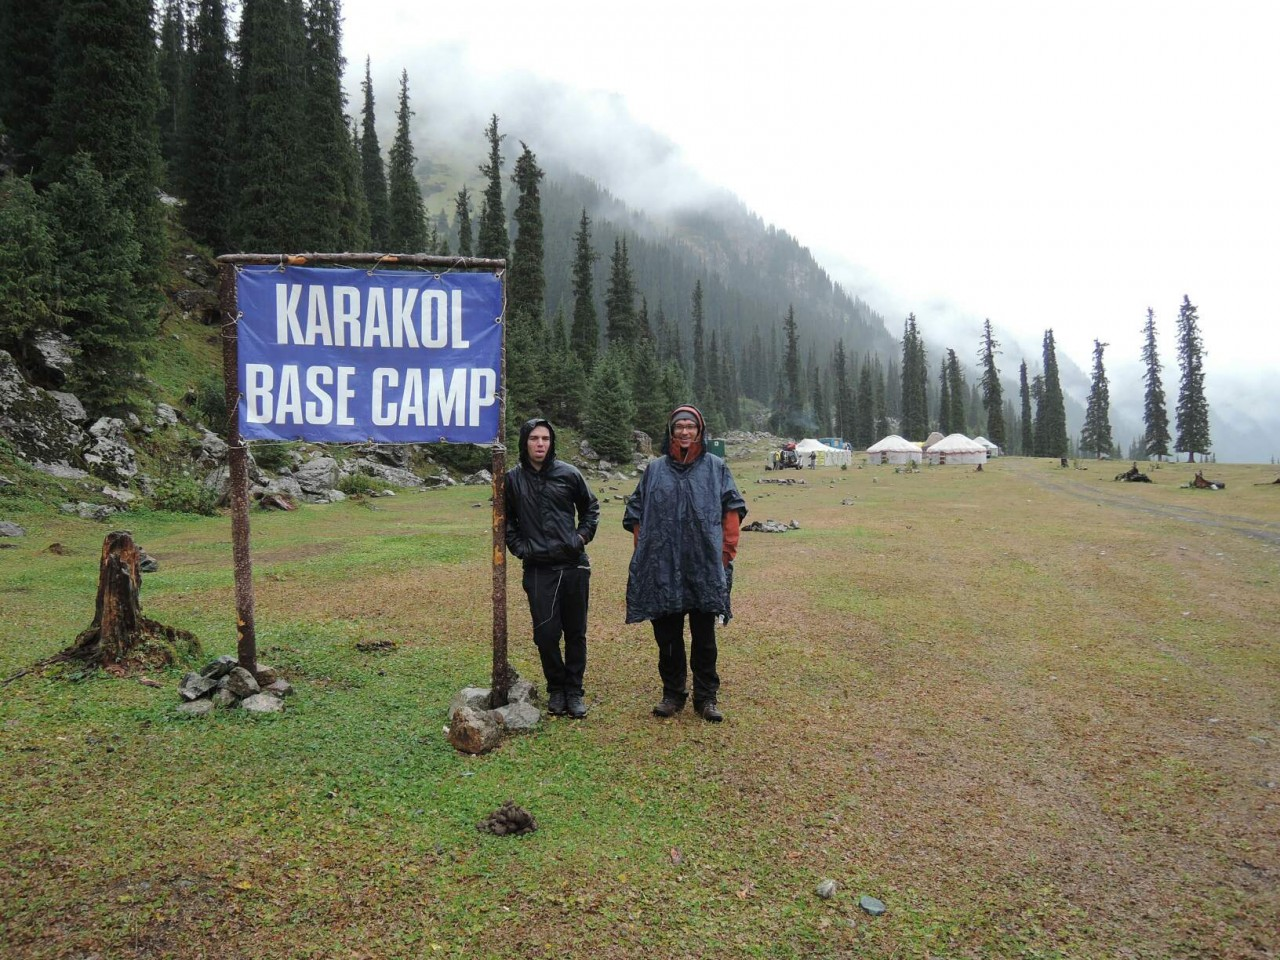 Karakol Basecamp - bad weather, bad motivation